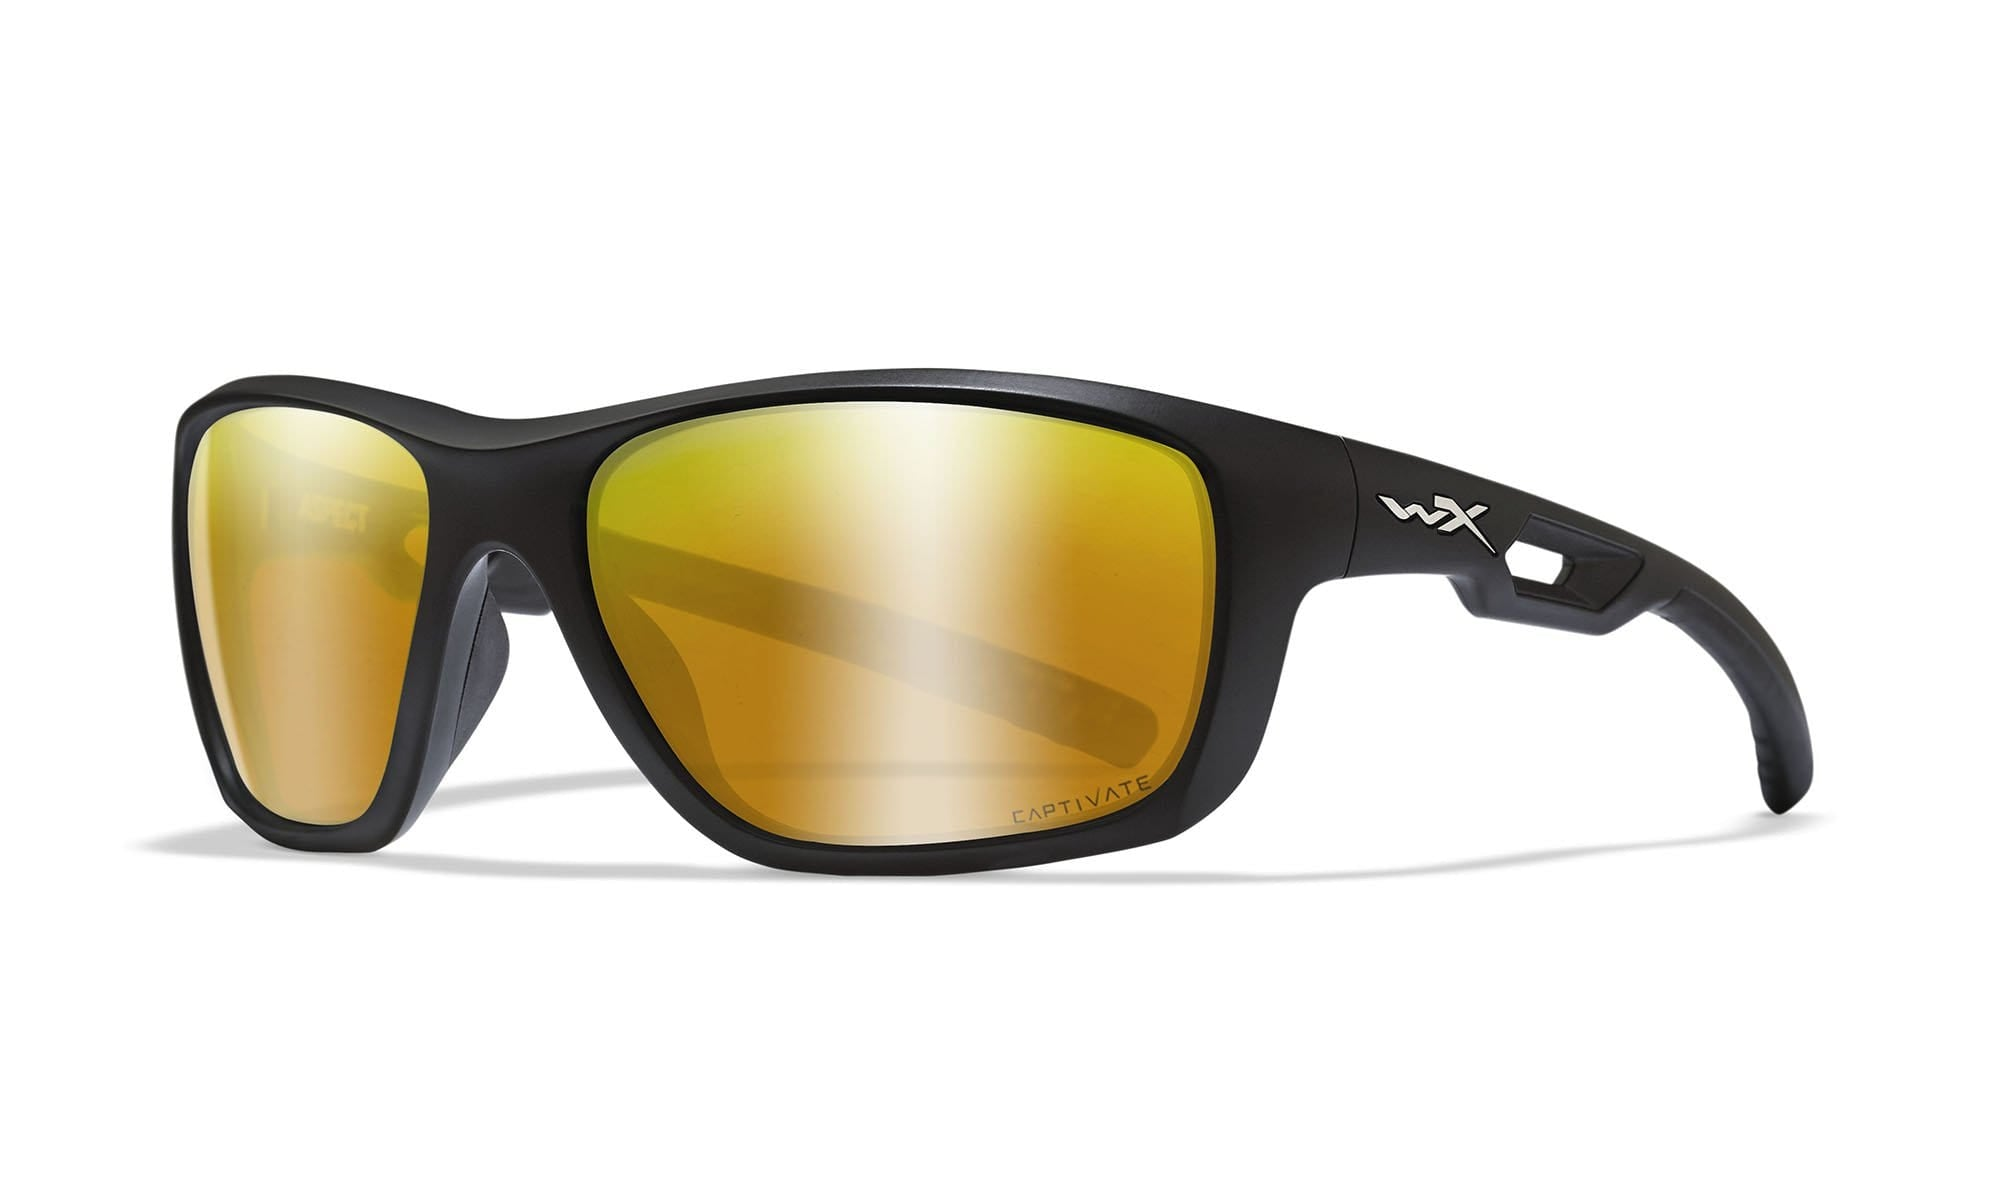 WILEY X WX Aspect Sunglasses